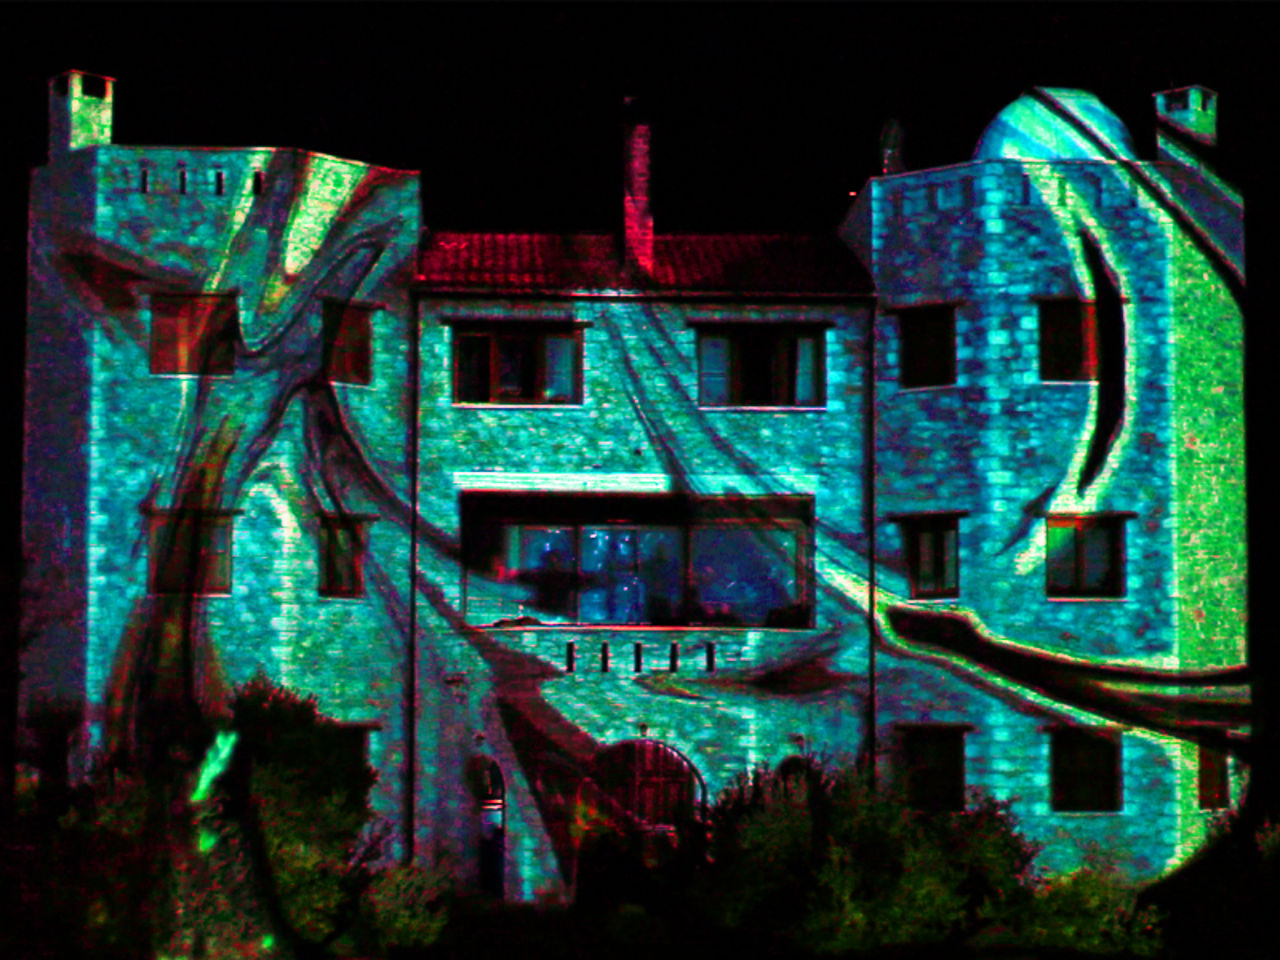 Videomapping Performance | Koumaria NewMediaArt (Greece) 2011